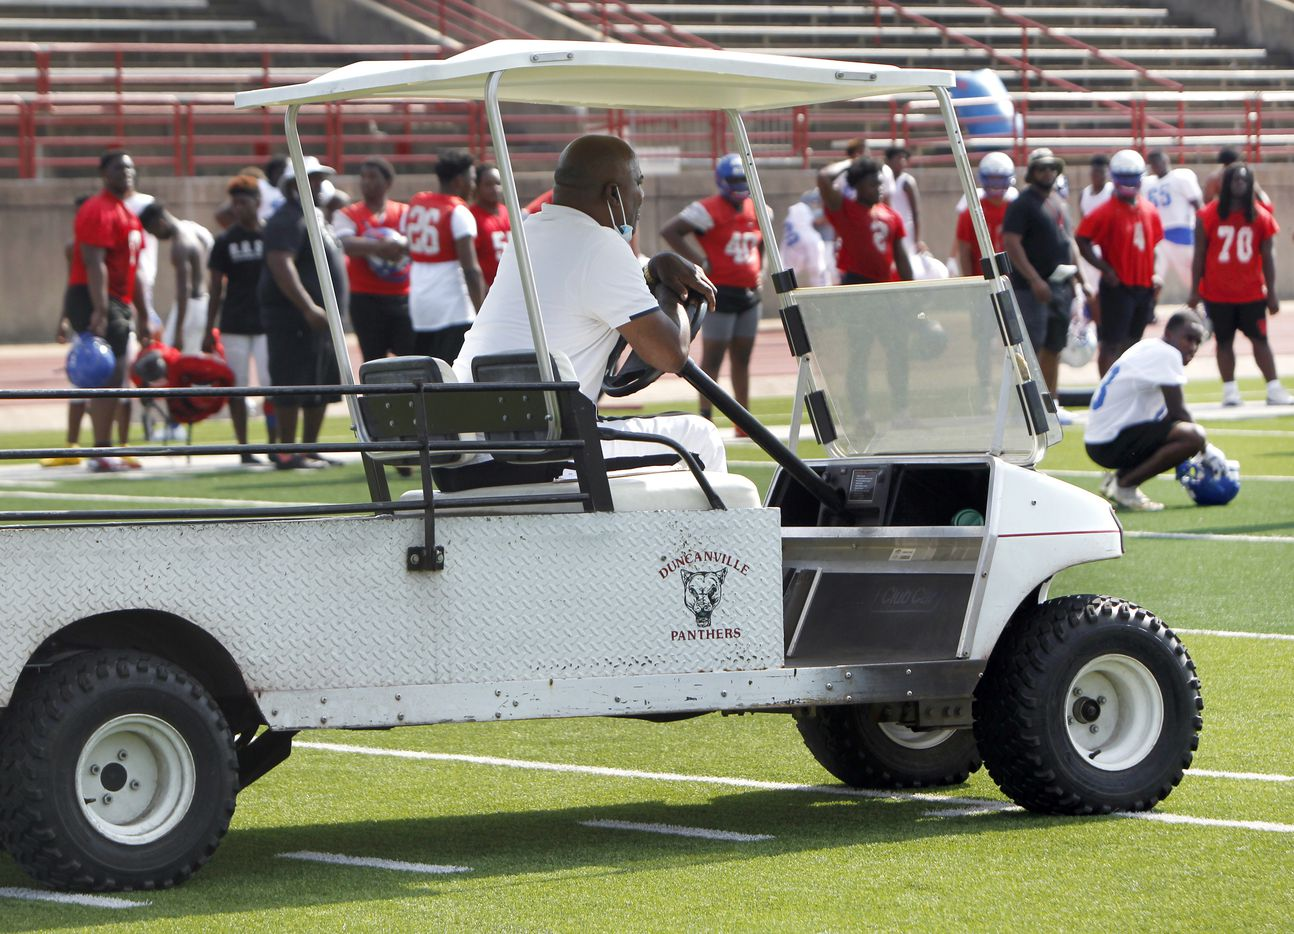 Duncanville panther head football coach Reginald Samples intently observes his varsity squad in the shade from under the canopy of a team utility cart. The Duncanville varsity football team conducted their 2021season football opening practice at Panther Stadium in Duncanville on August 9, 2021. (Steve Hamm/ Special Contributor)